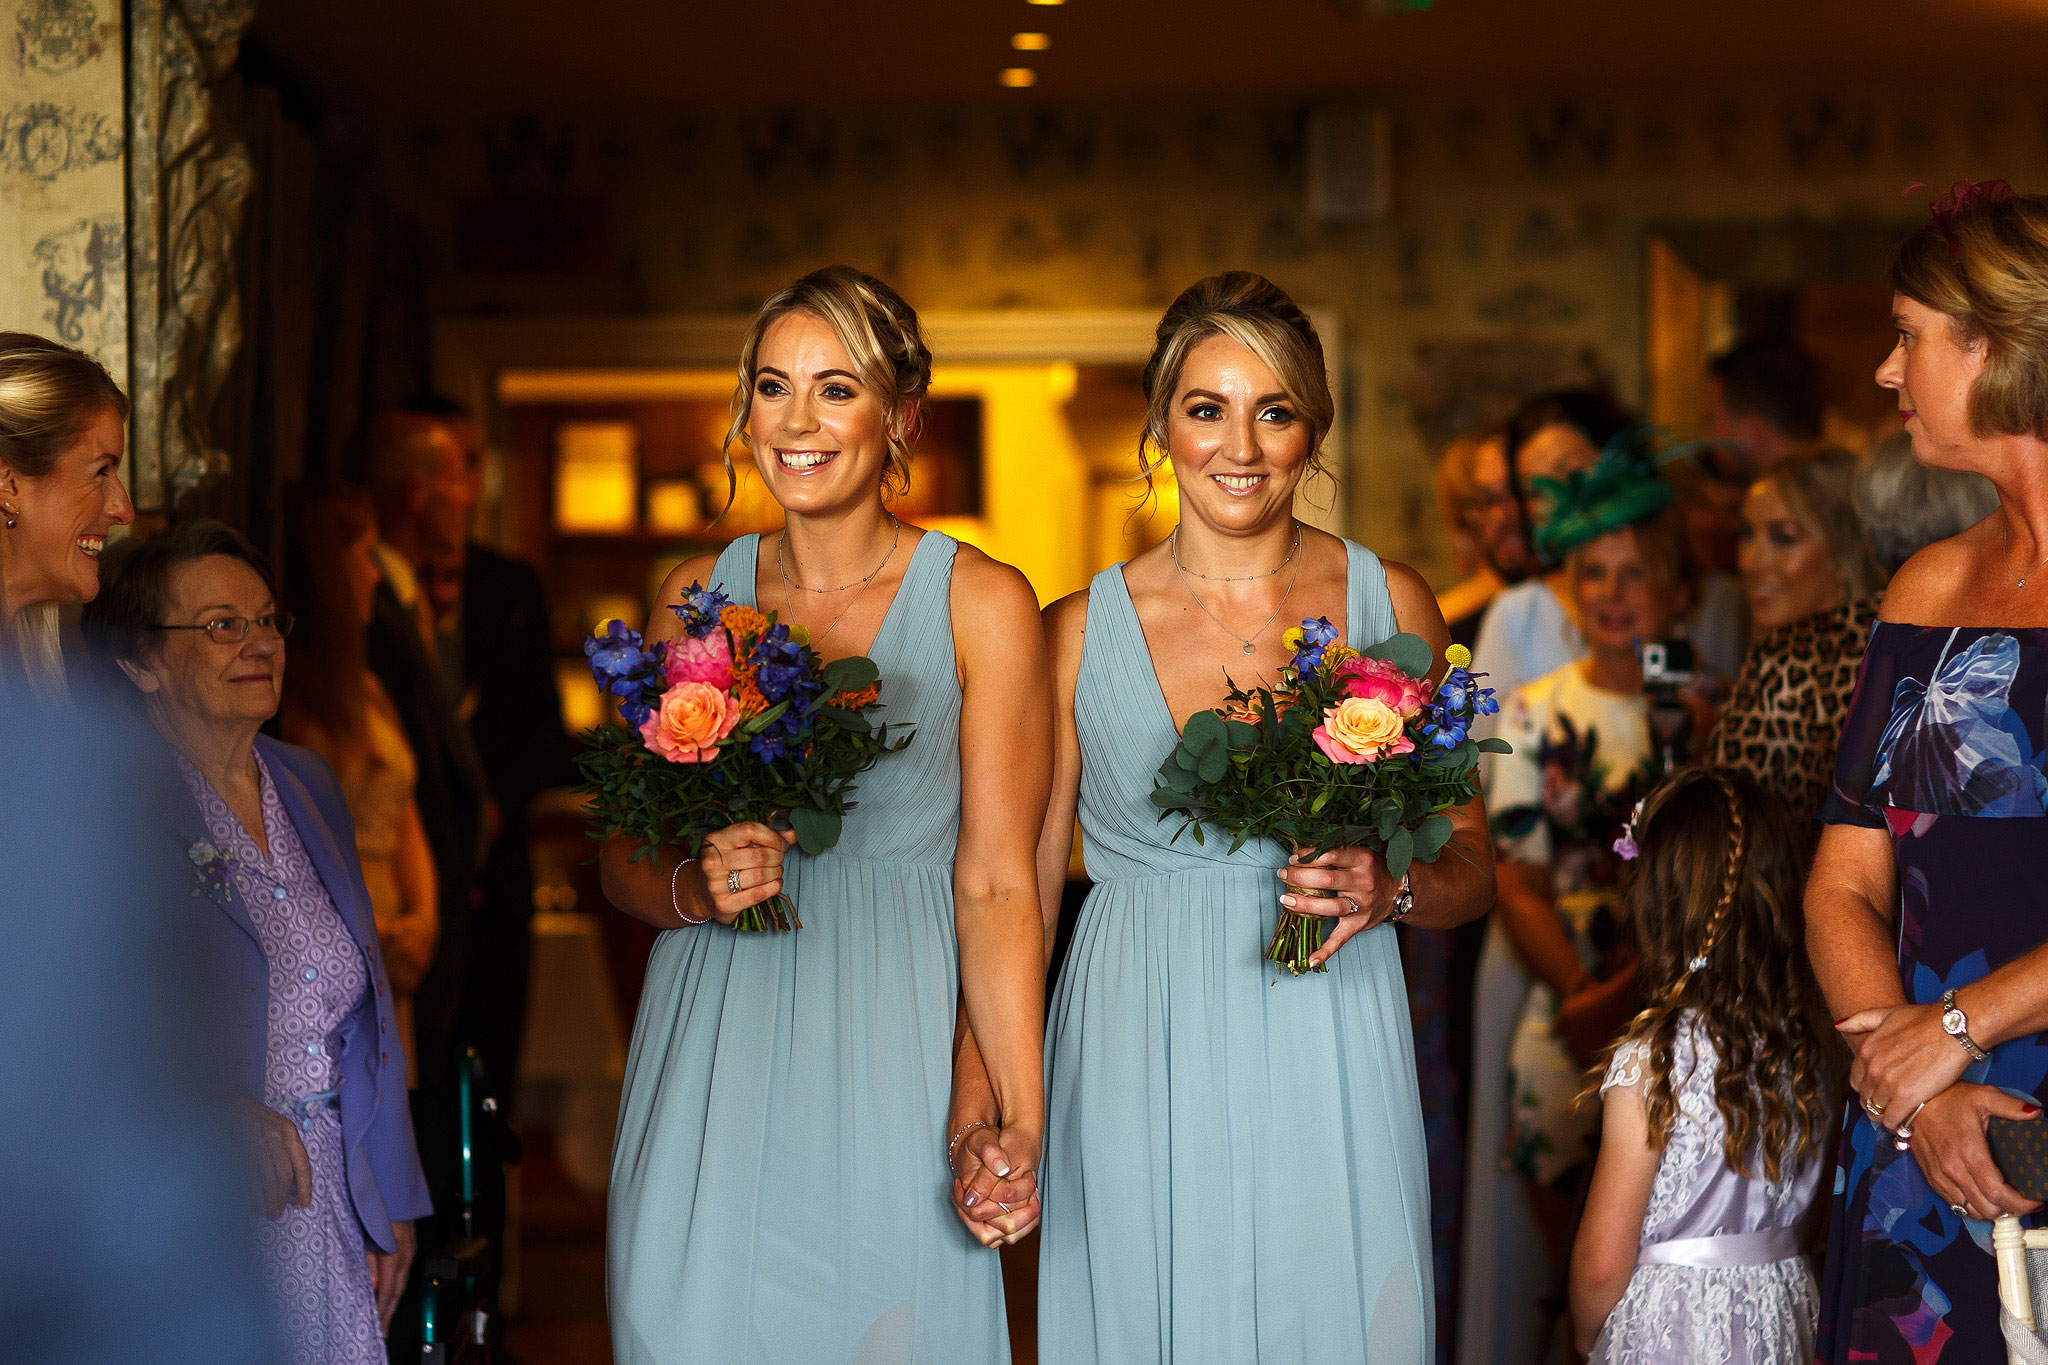 Bridesmaids with colourful flowers walking down the aisle wearing long pale blue dresses